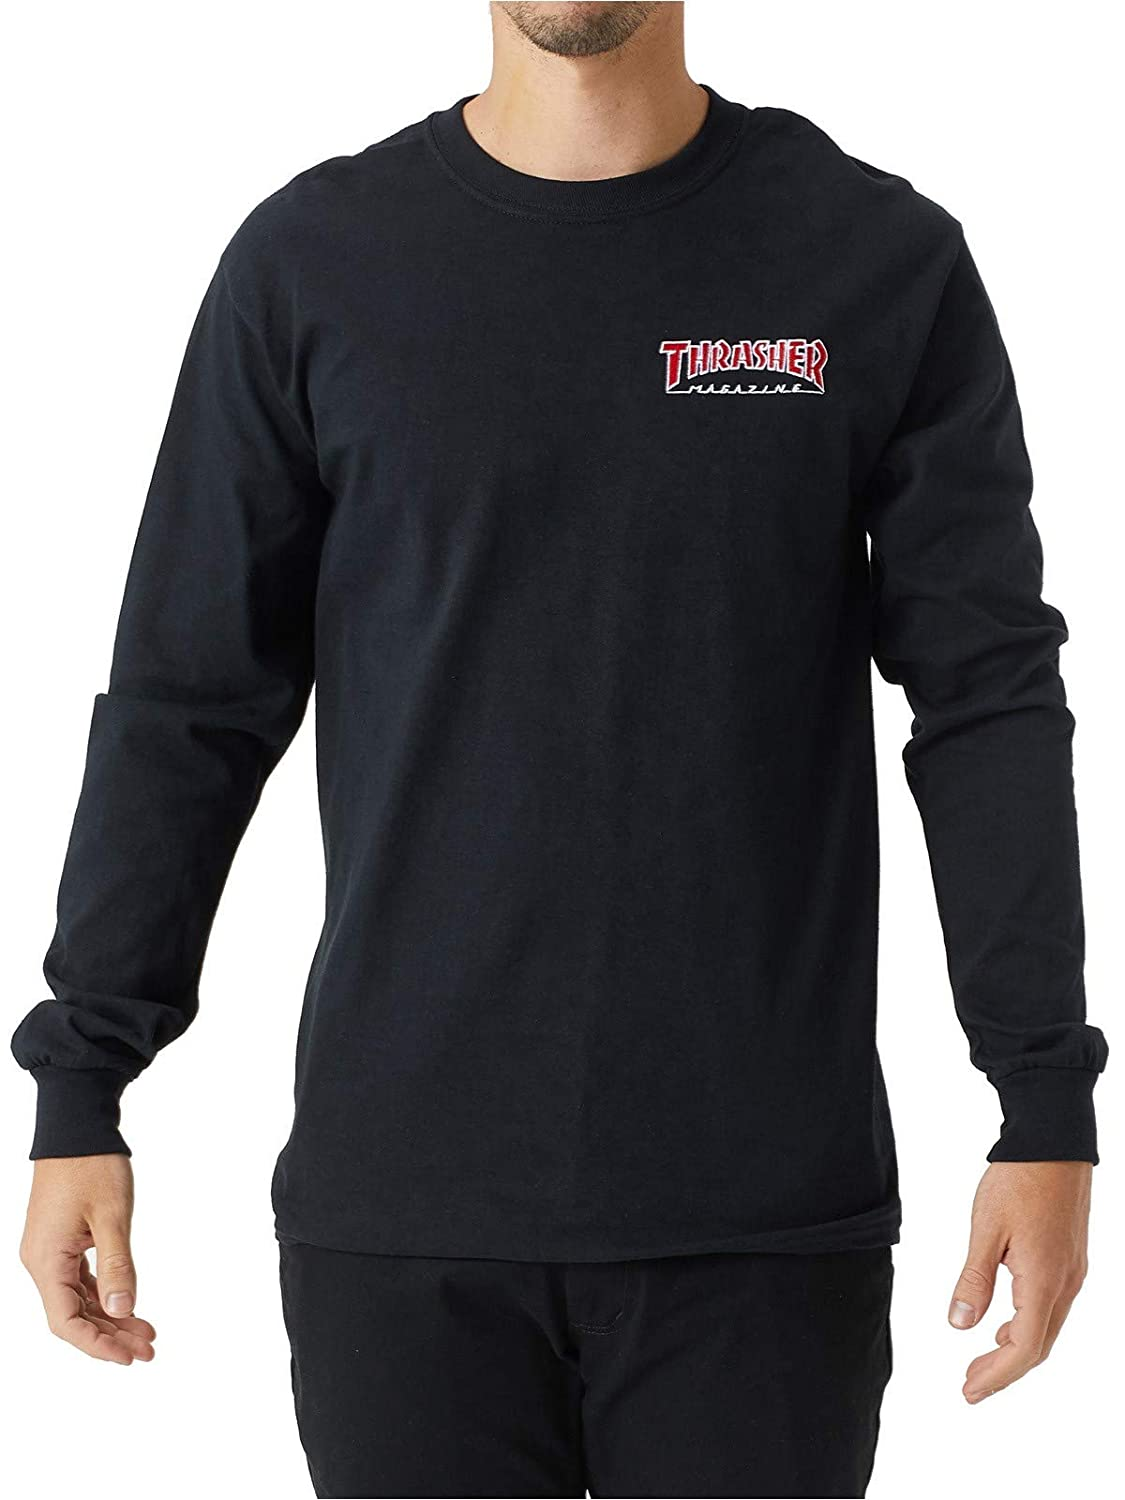 f56e605a71c3 Thrasher Embroidered Outlined Long Sleeve T-Shirt - Black | Amazon.com